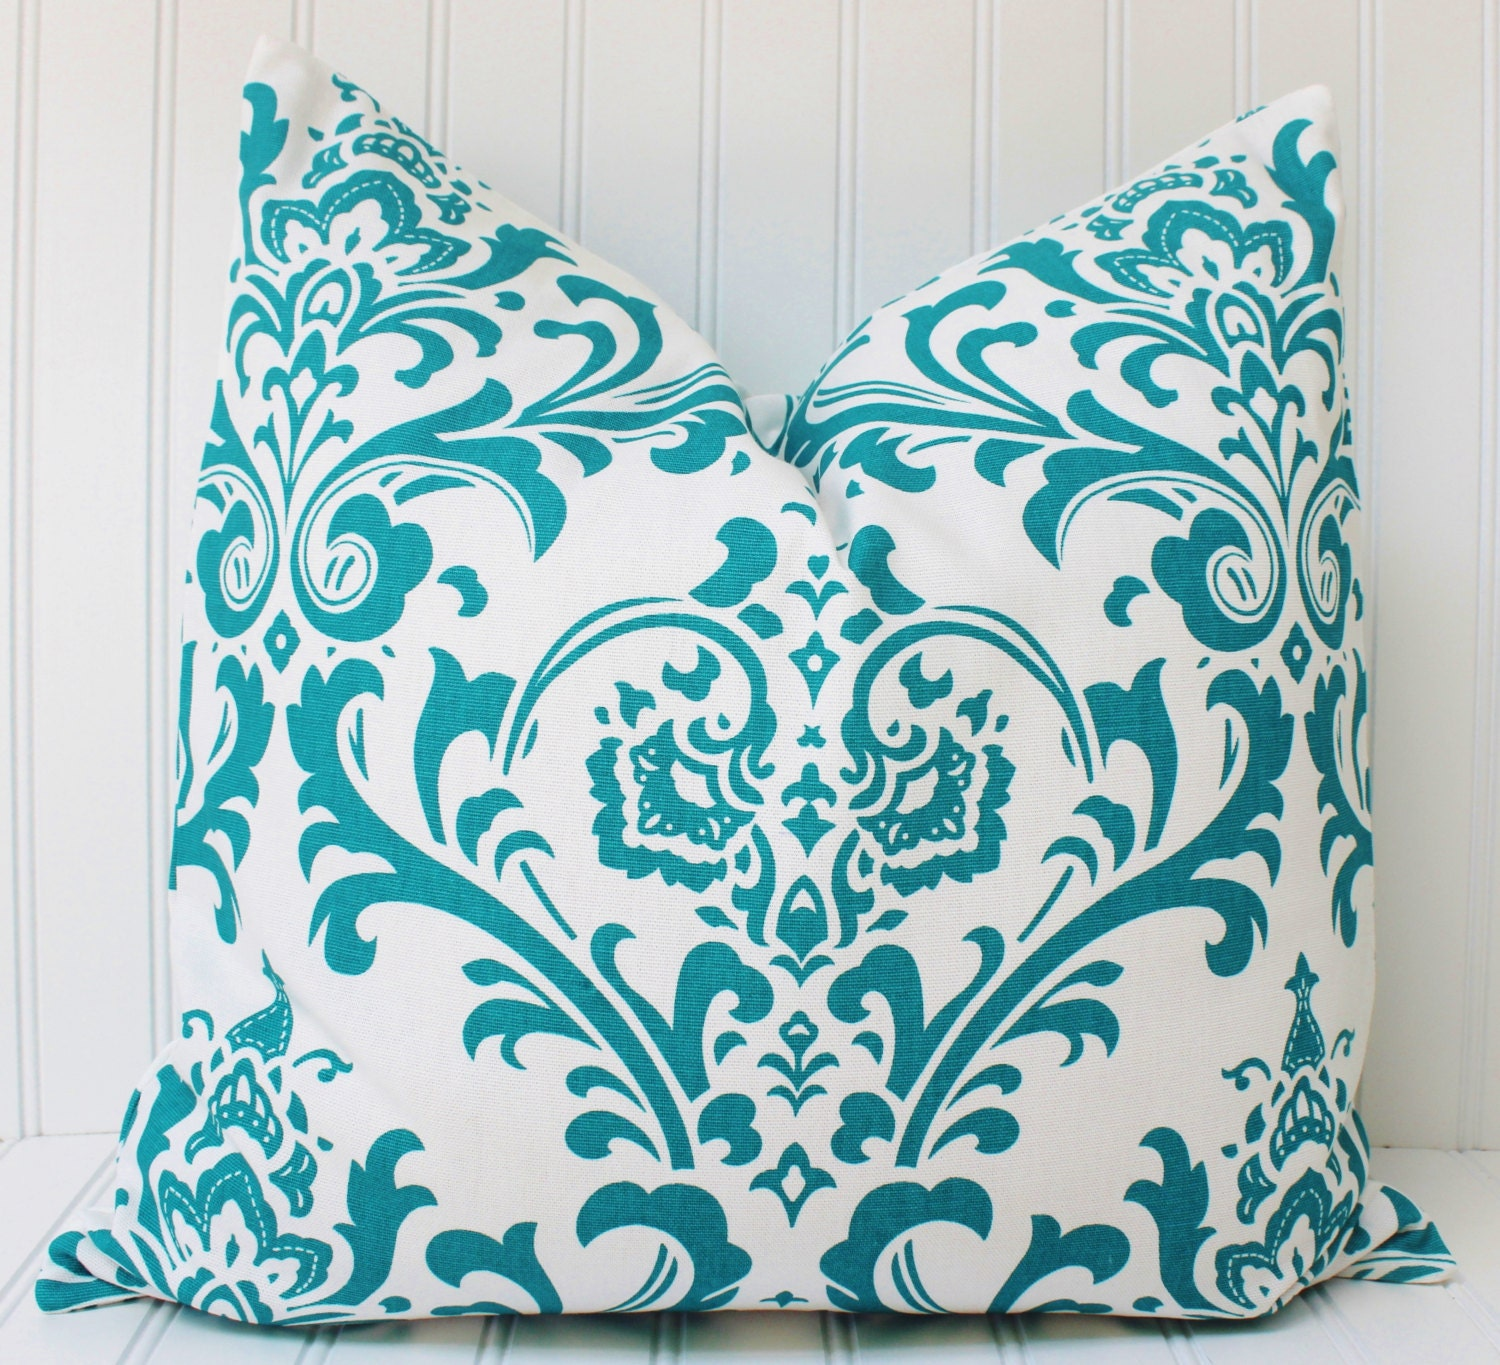 decorative turquoise pillow throw pillow couch pillow